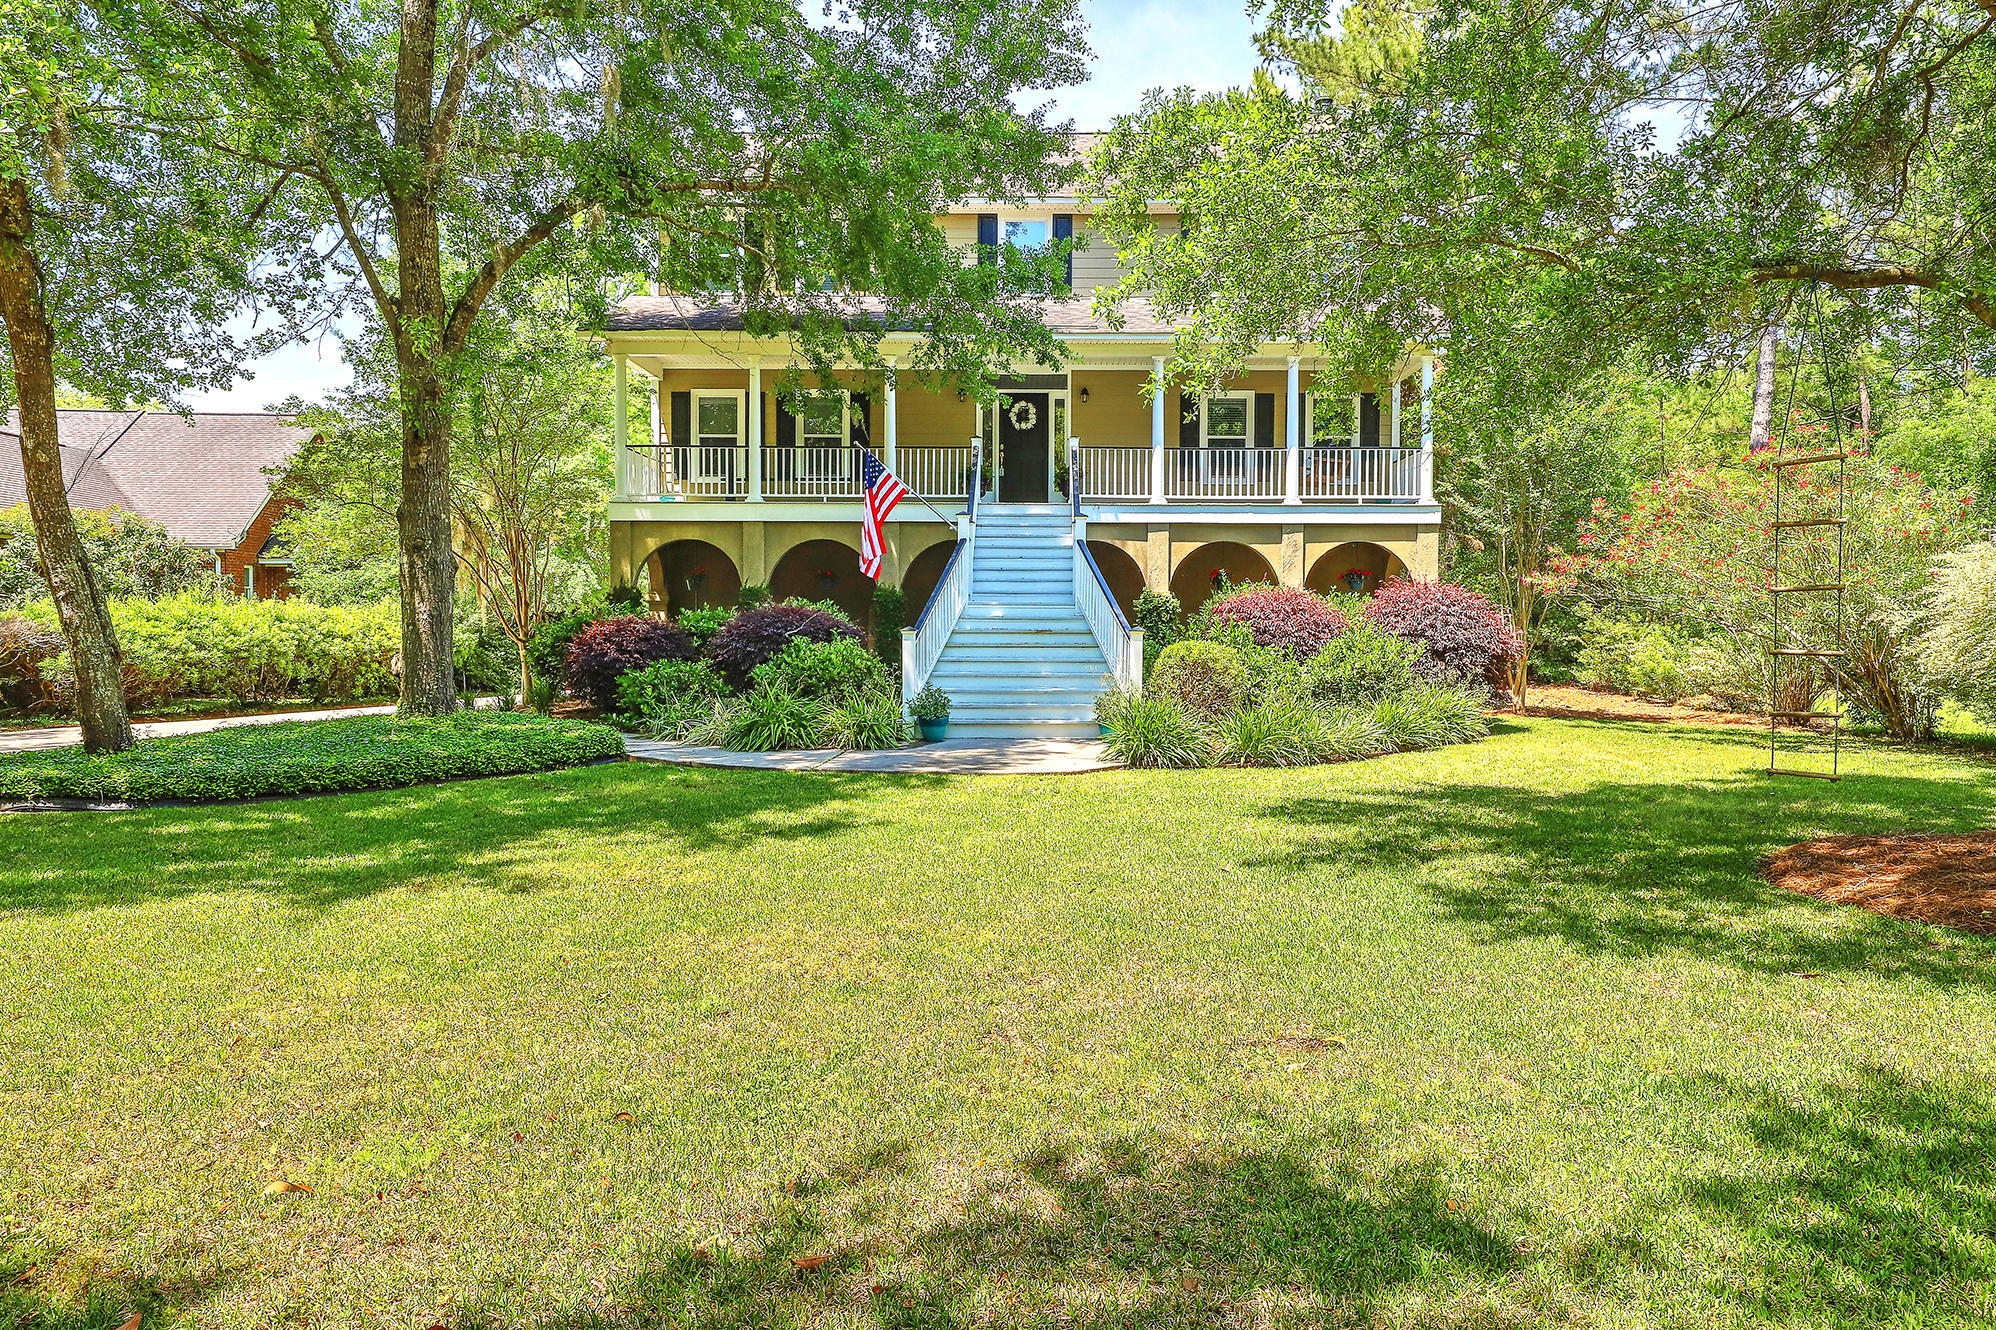 Stono Ferry Homes For Sale - 5104 St Ann, Hollywood, SC - 27